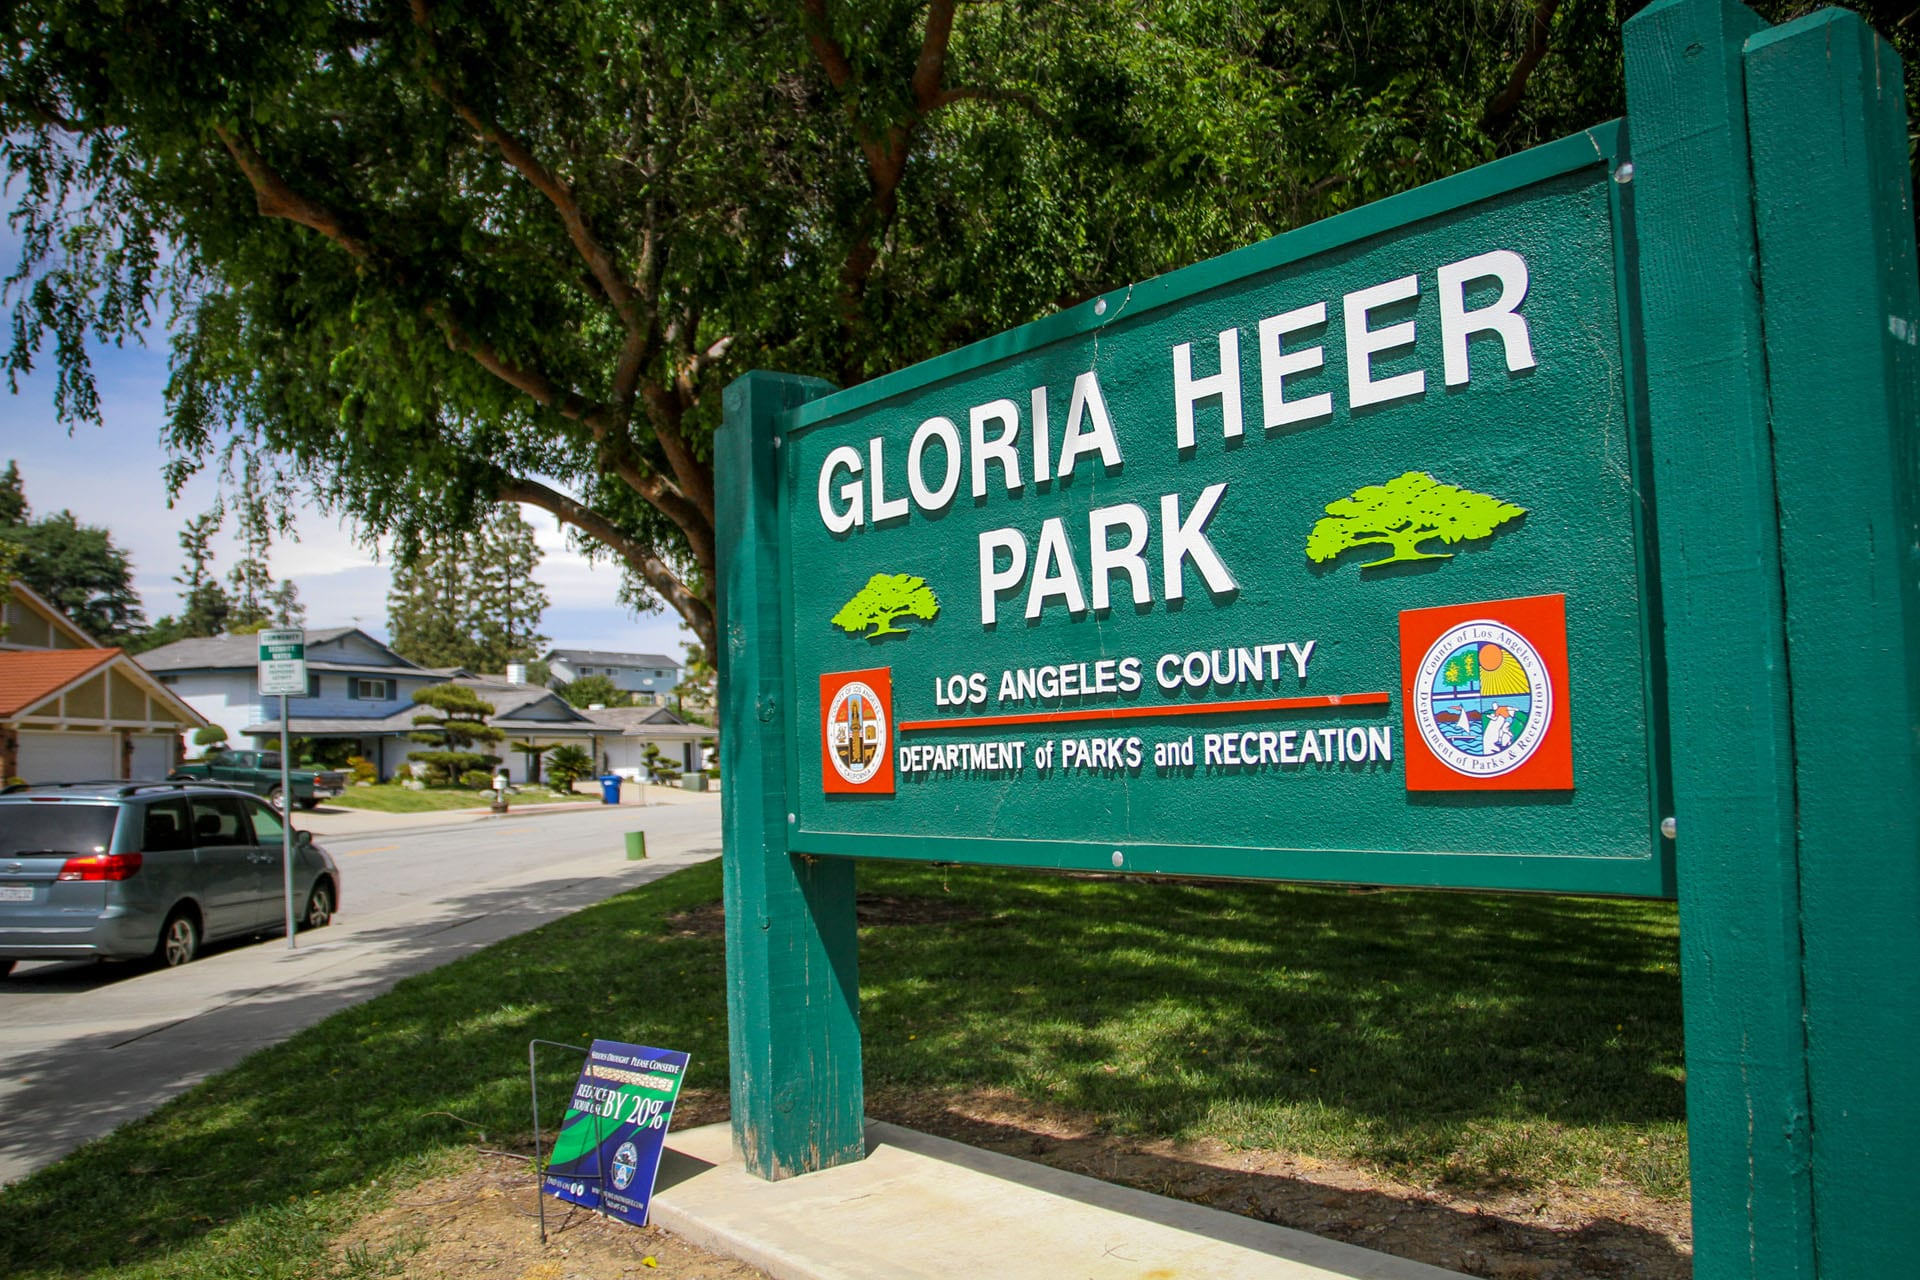 Gloria Heer Park sign from the right